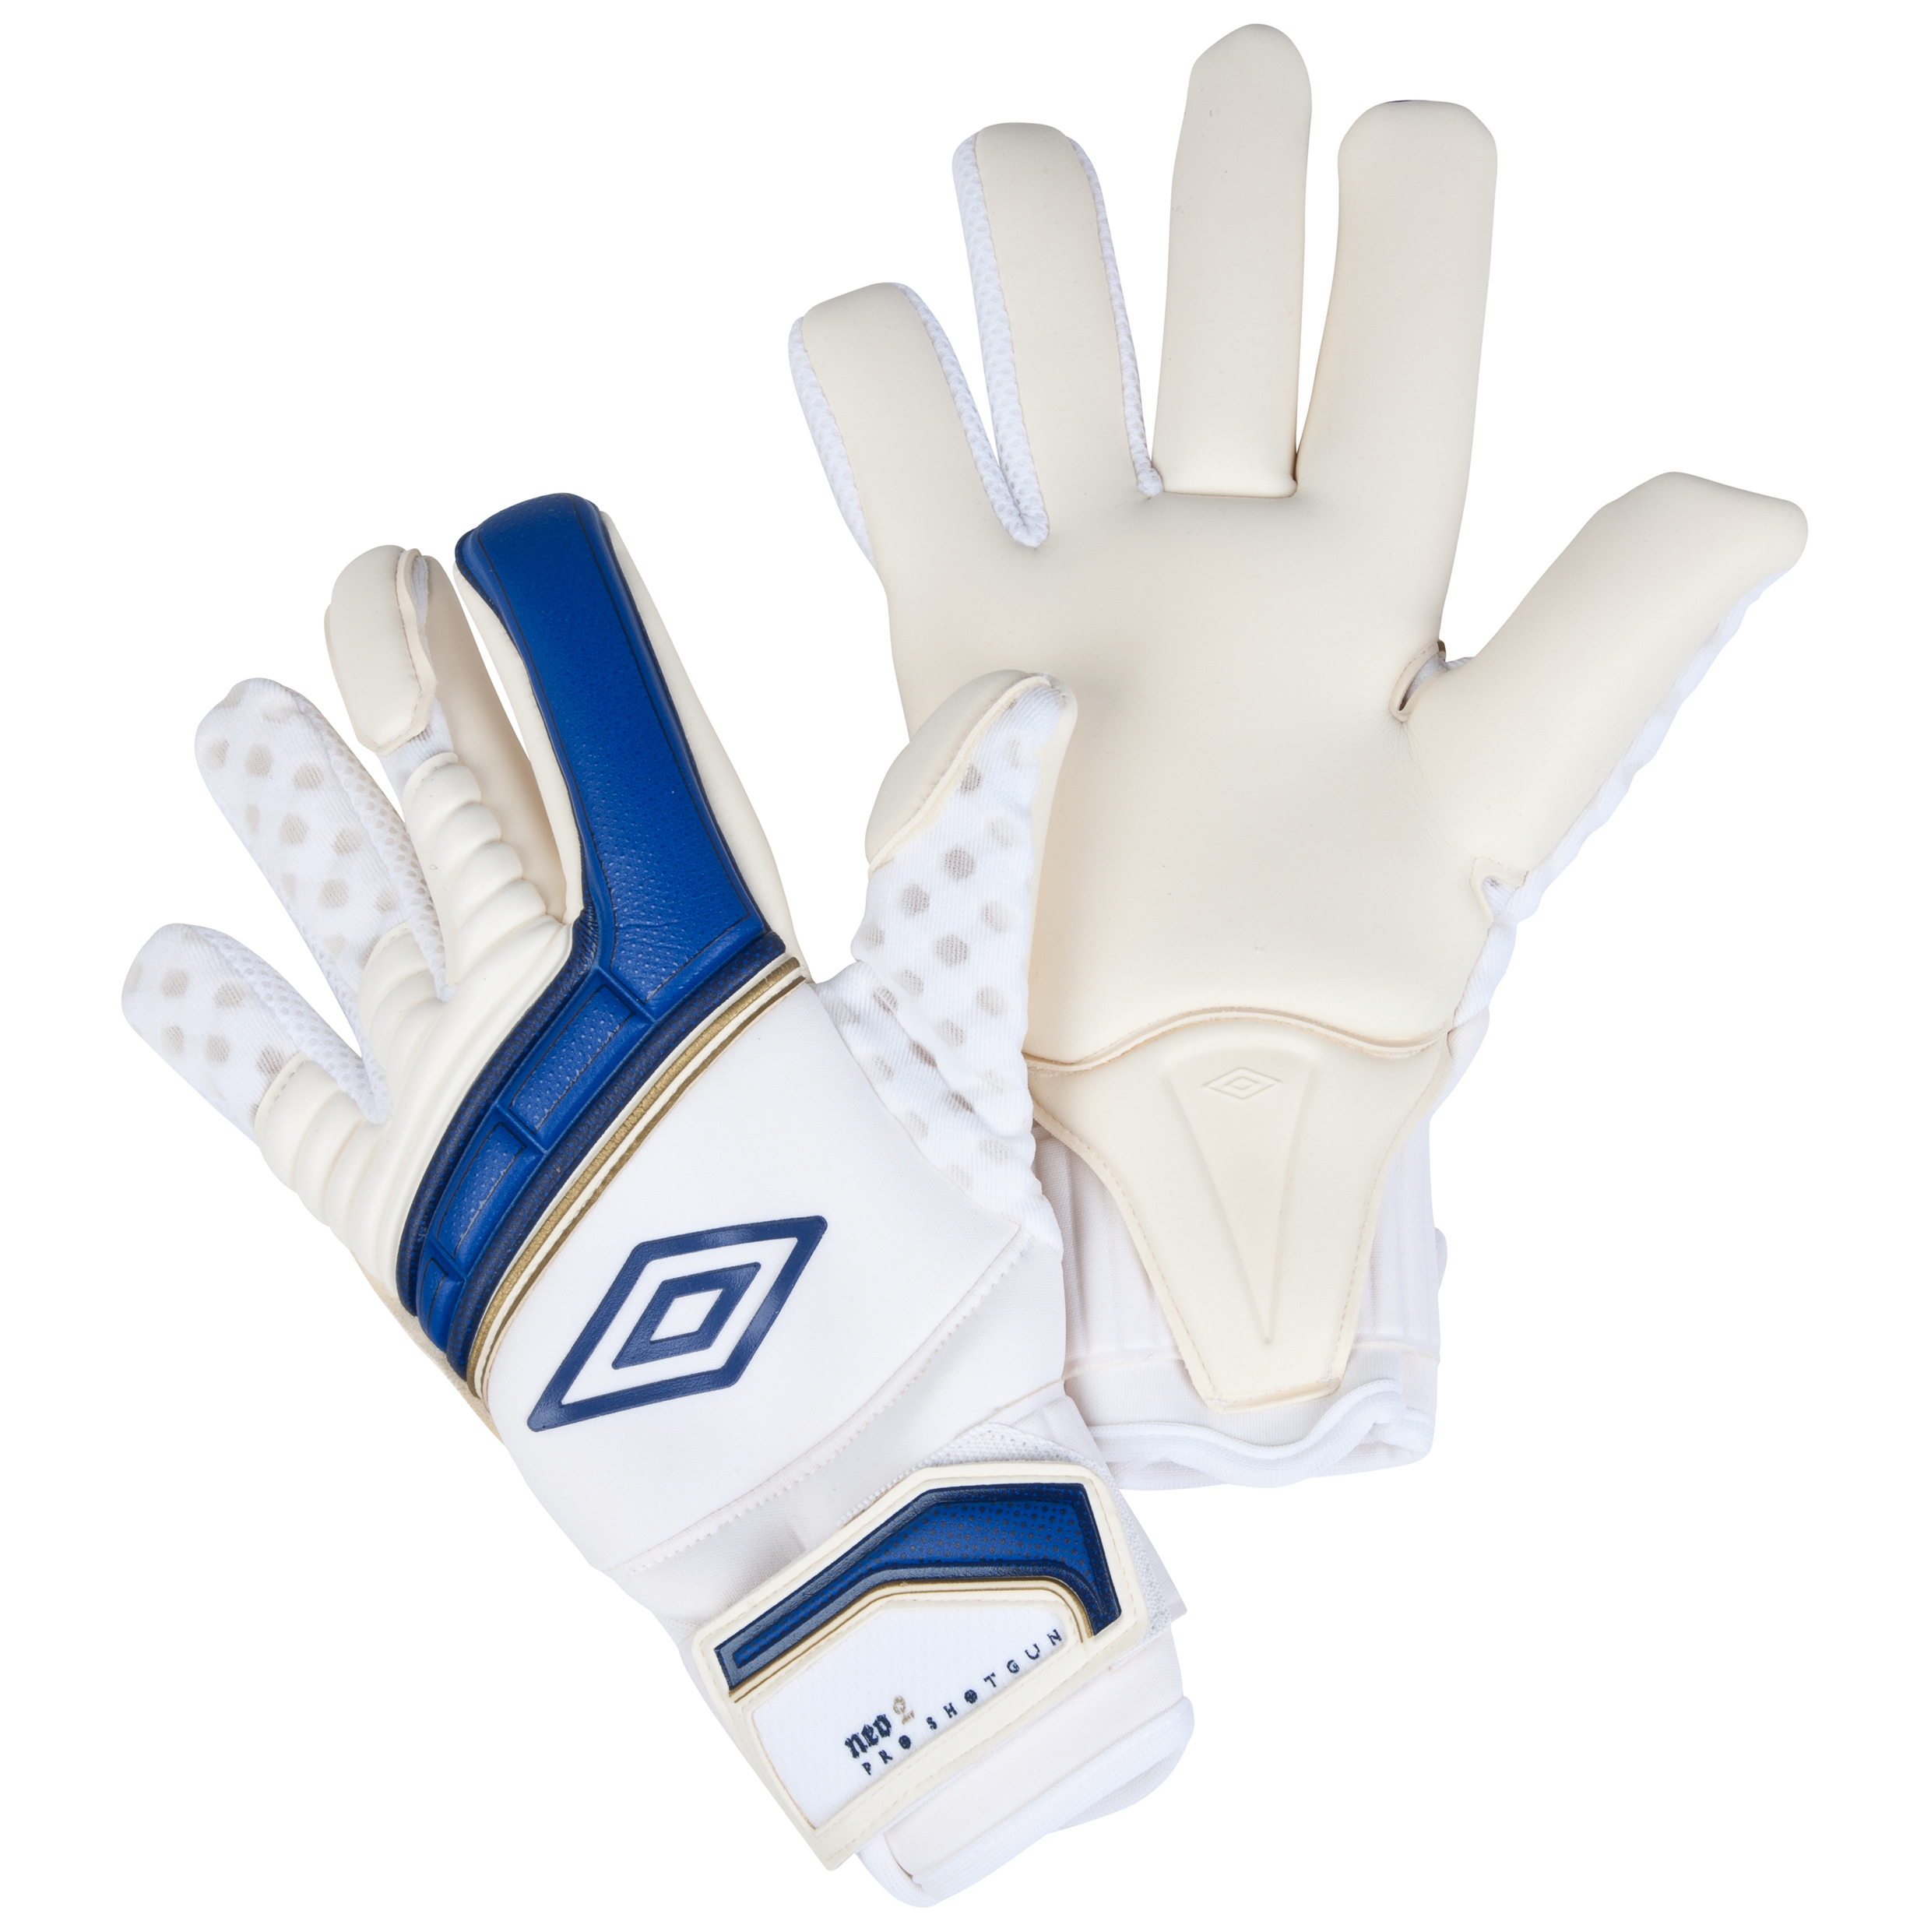 Umbro Neo Pro Shotgun Goalkeeper Gloves-White / Twilight Blue / Gold